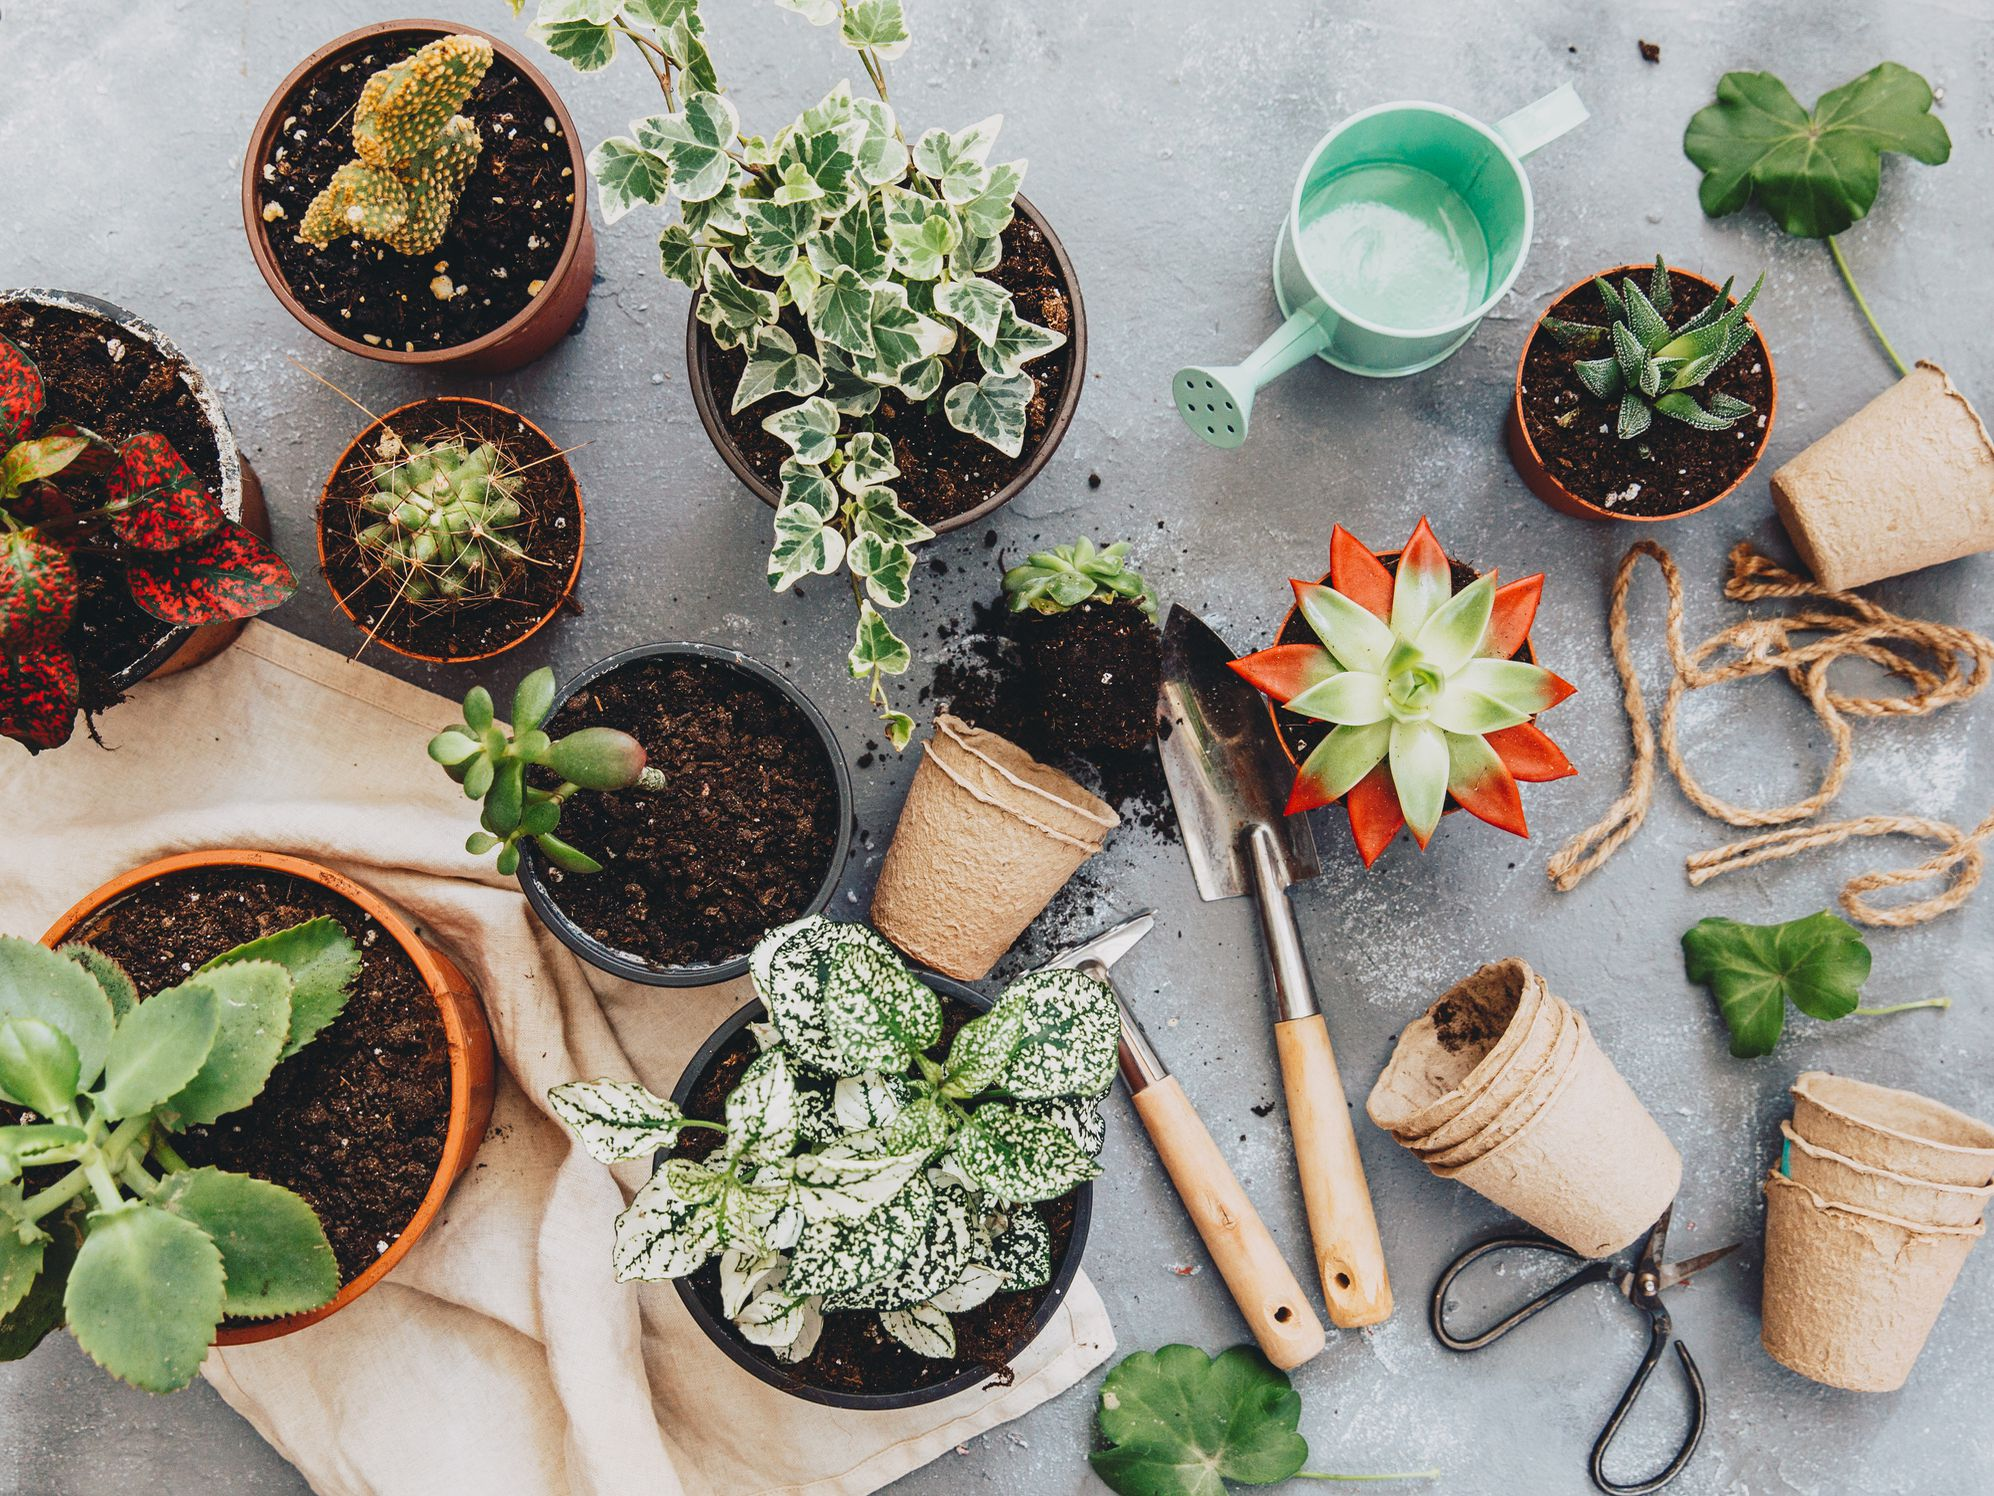 25 Diy Garden Projects Anyone Can Do